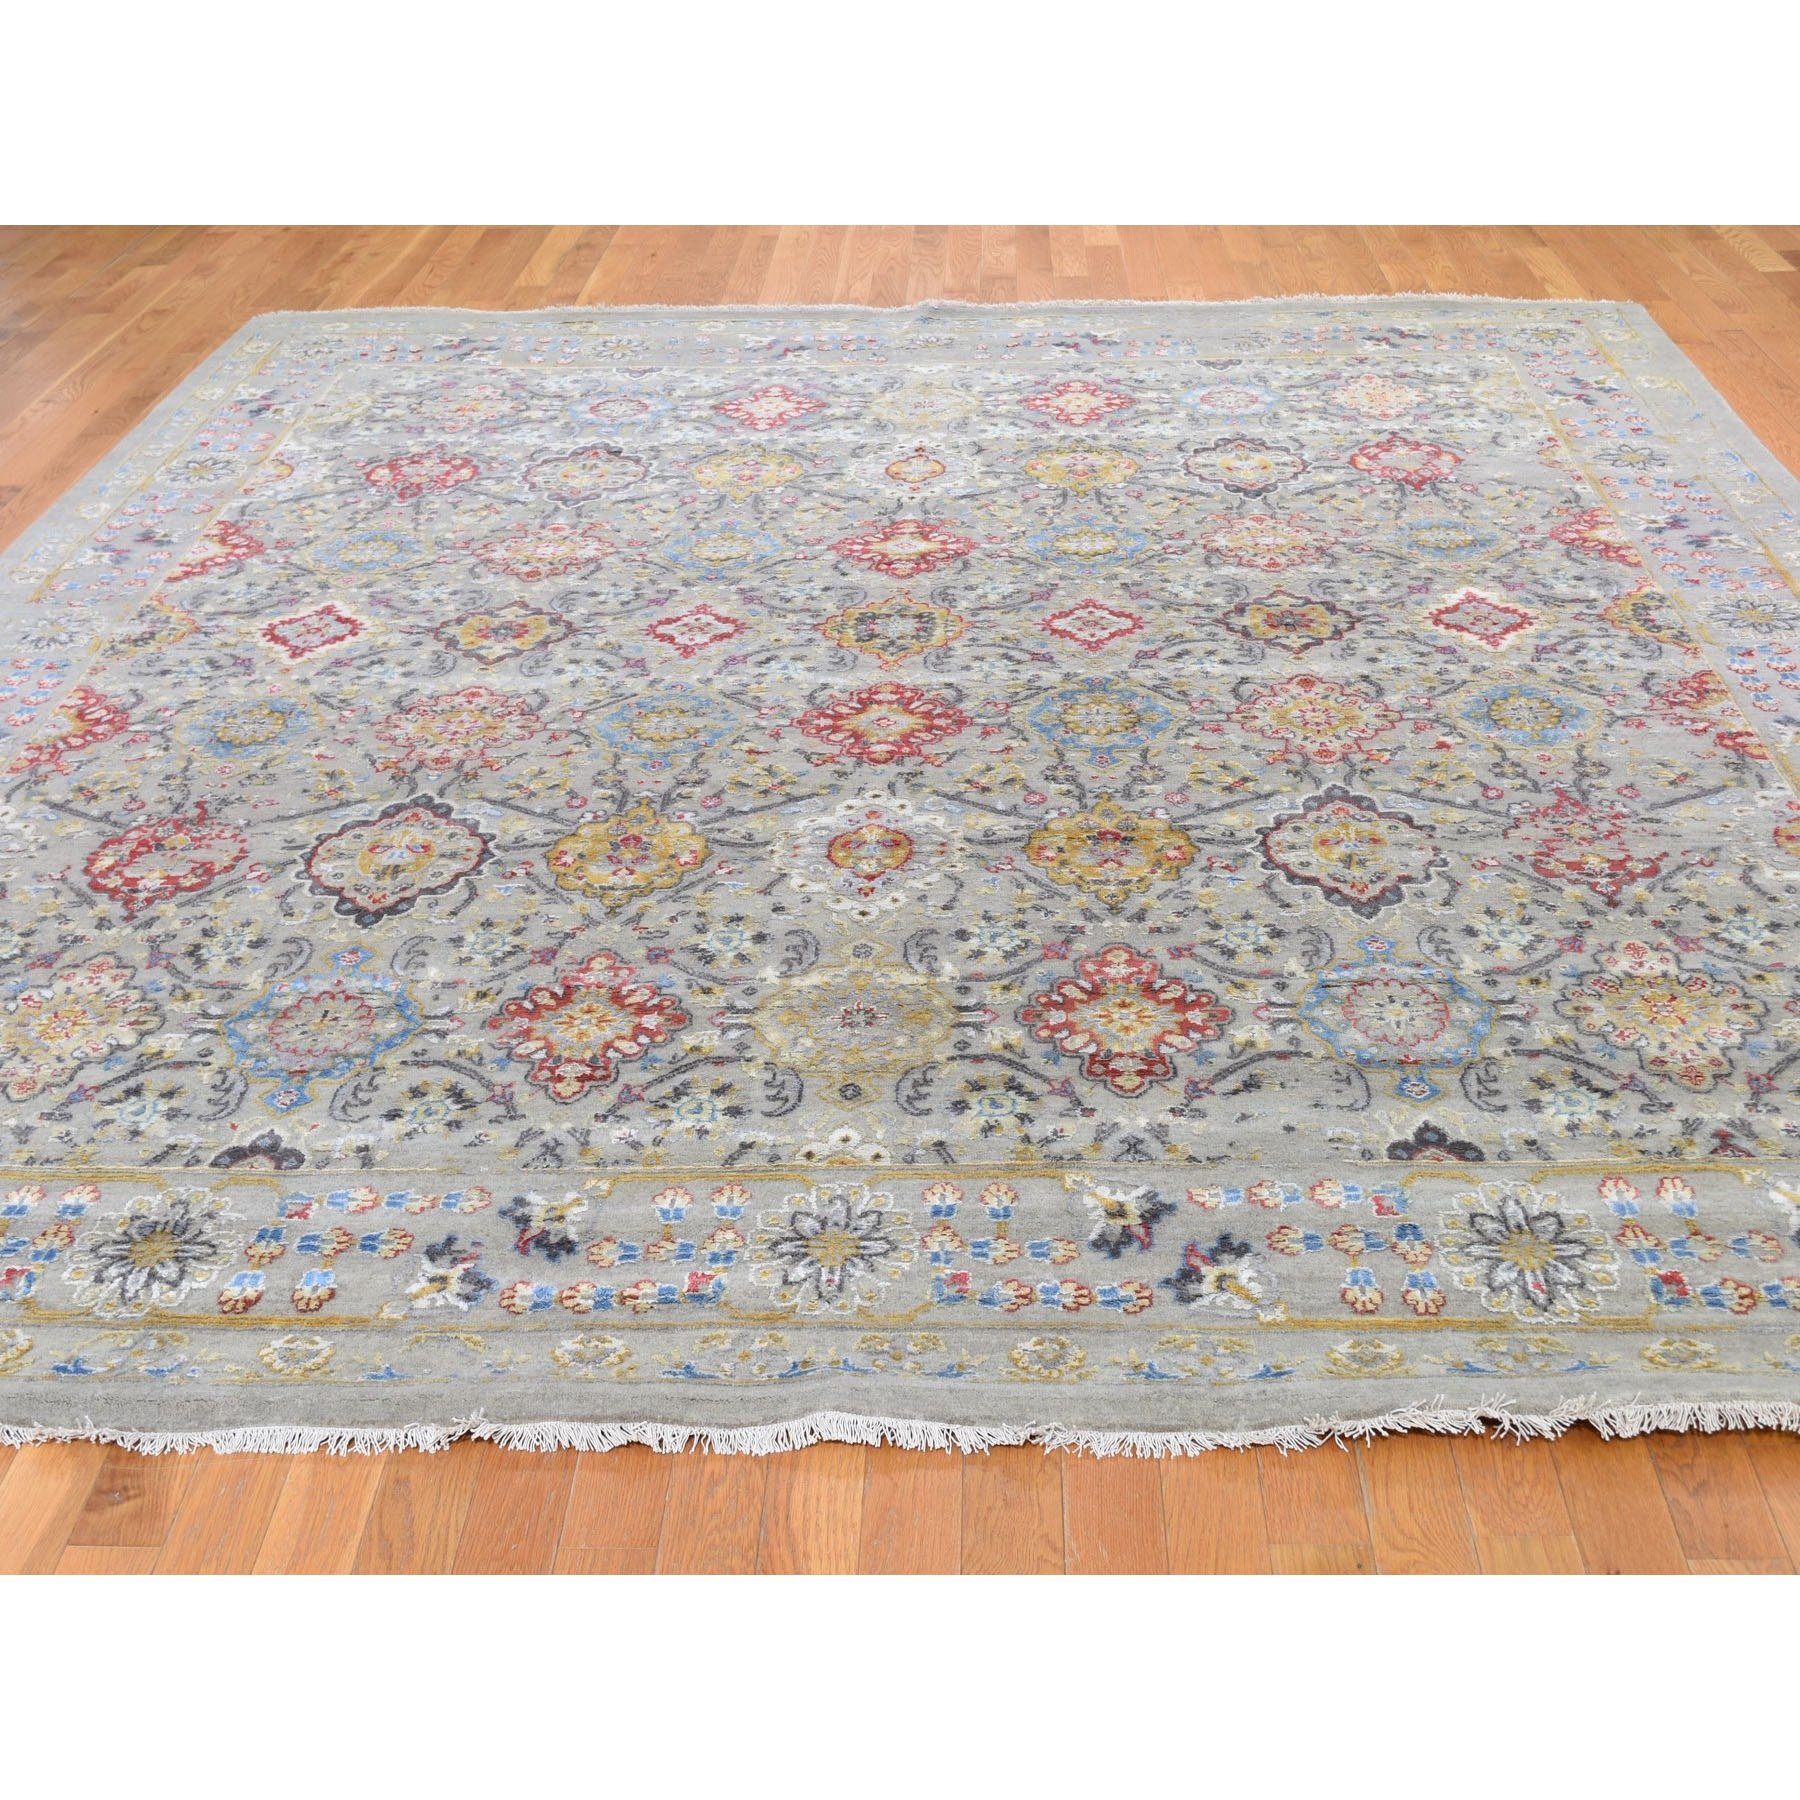 10-3 x10-3  Square THE SUNSET ROSETTES Wool And Pure Silk Hand Knotted Oriental Rug